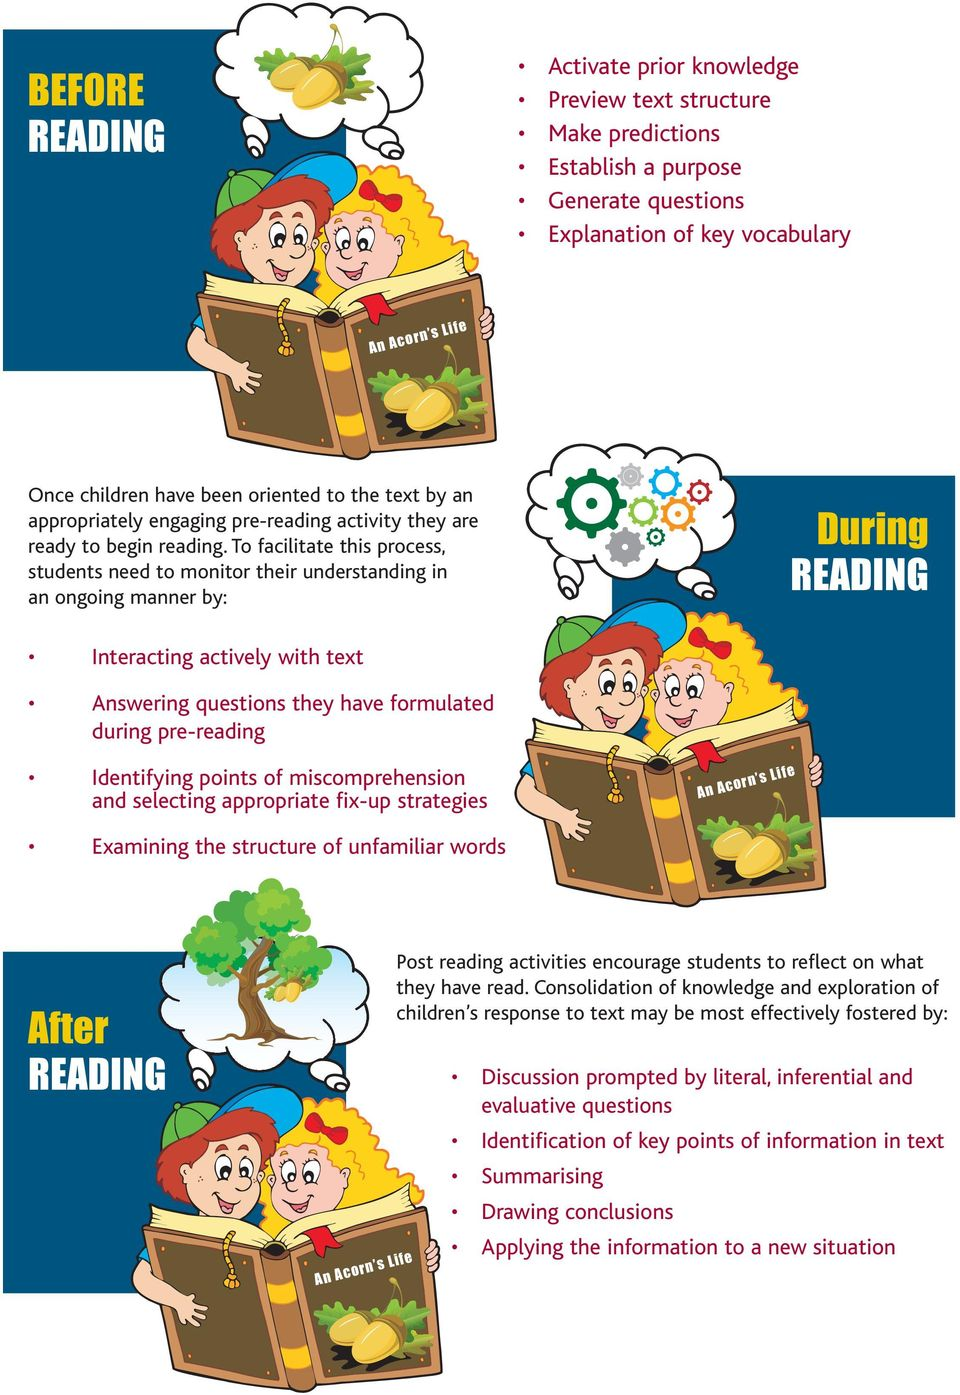 To facilitate this process, students need to monitor their understanding in an ongoing manner by: During READING Interacting actively with text Answering questions they have formulated during